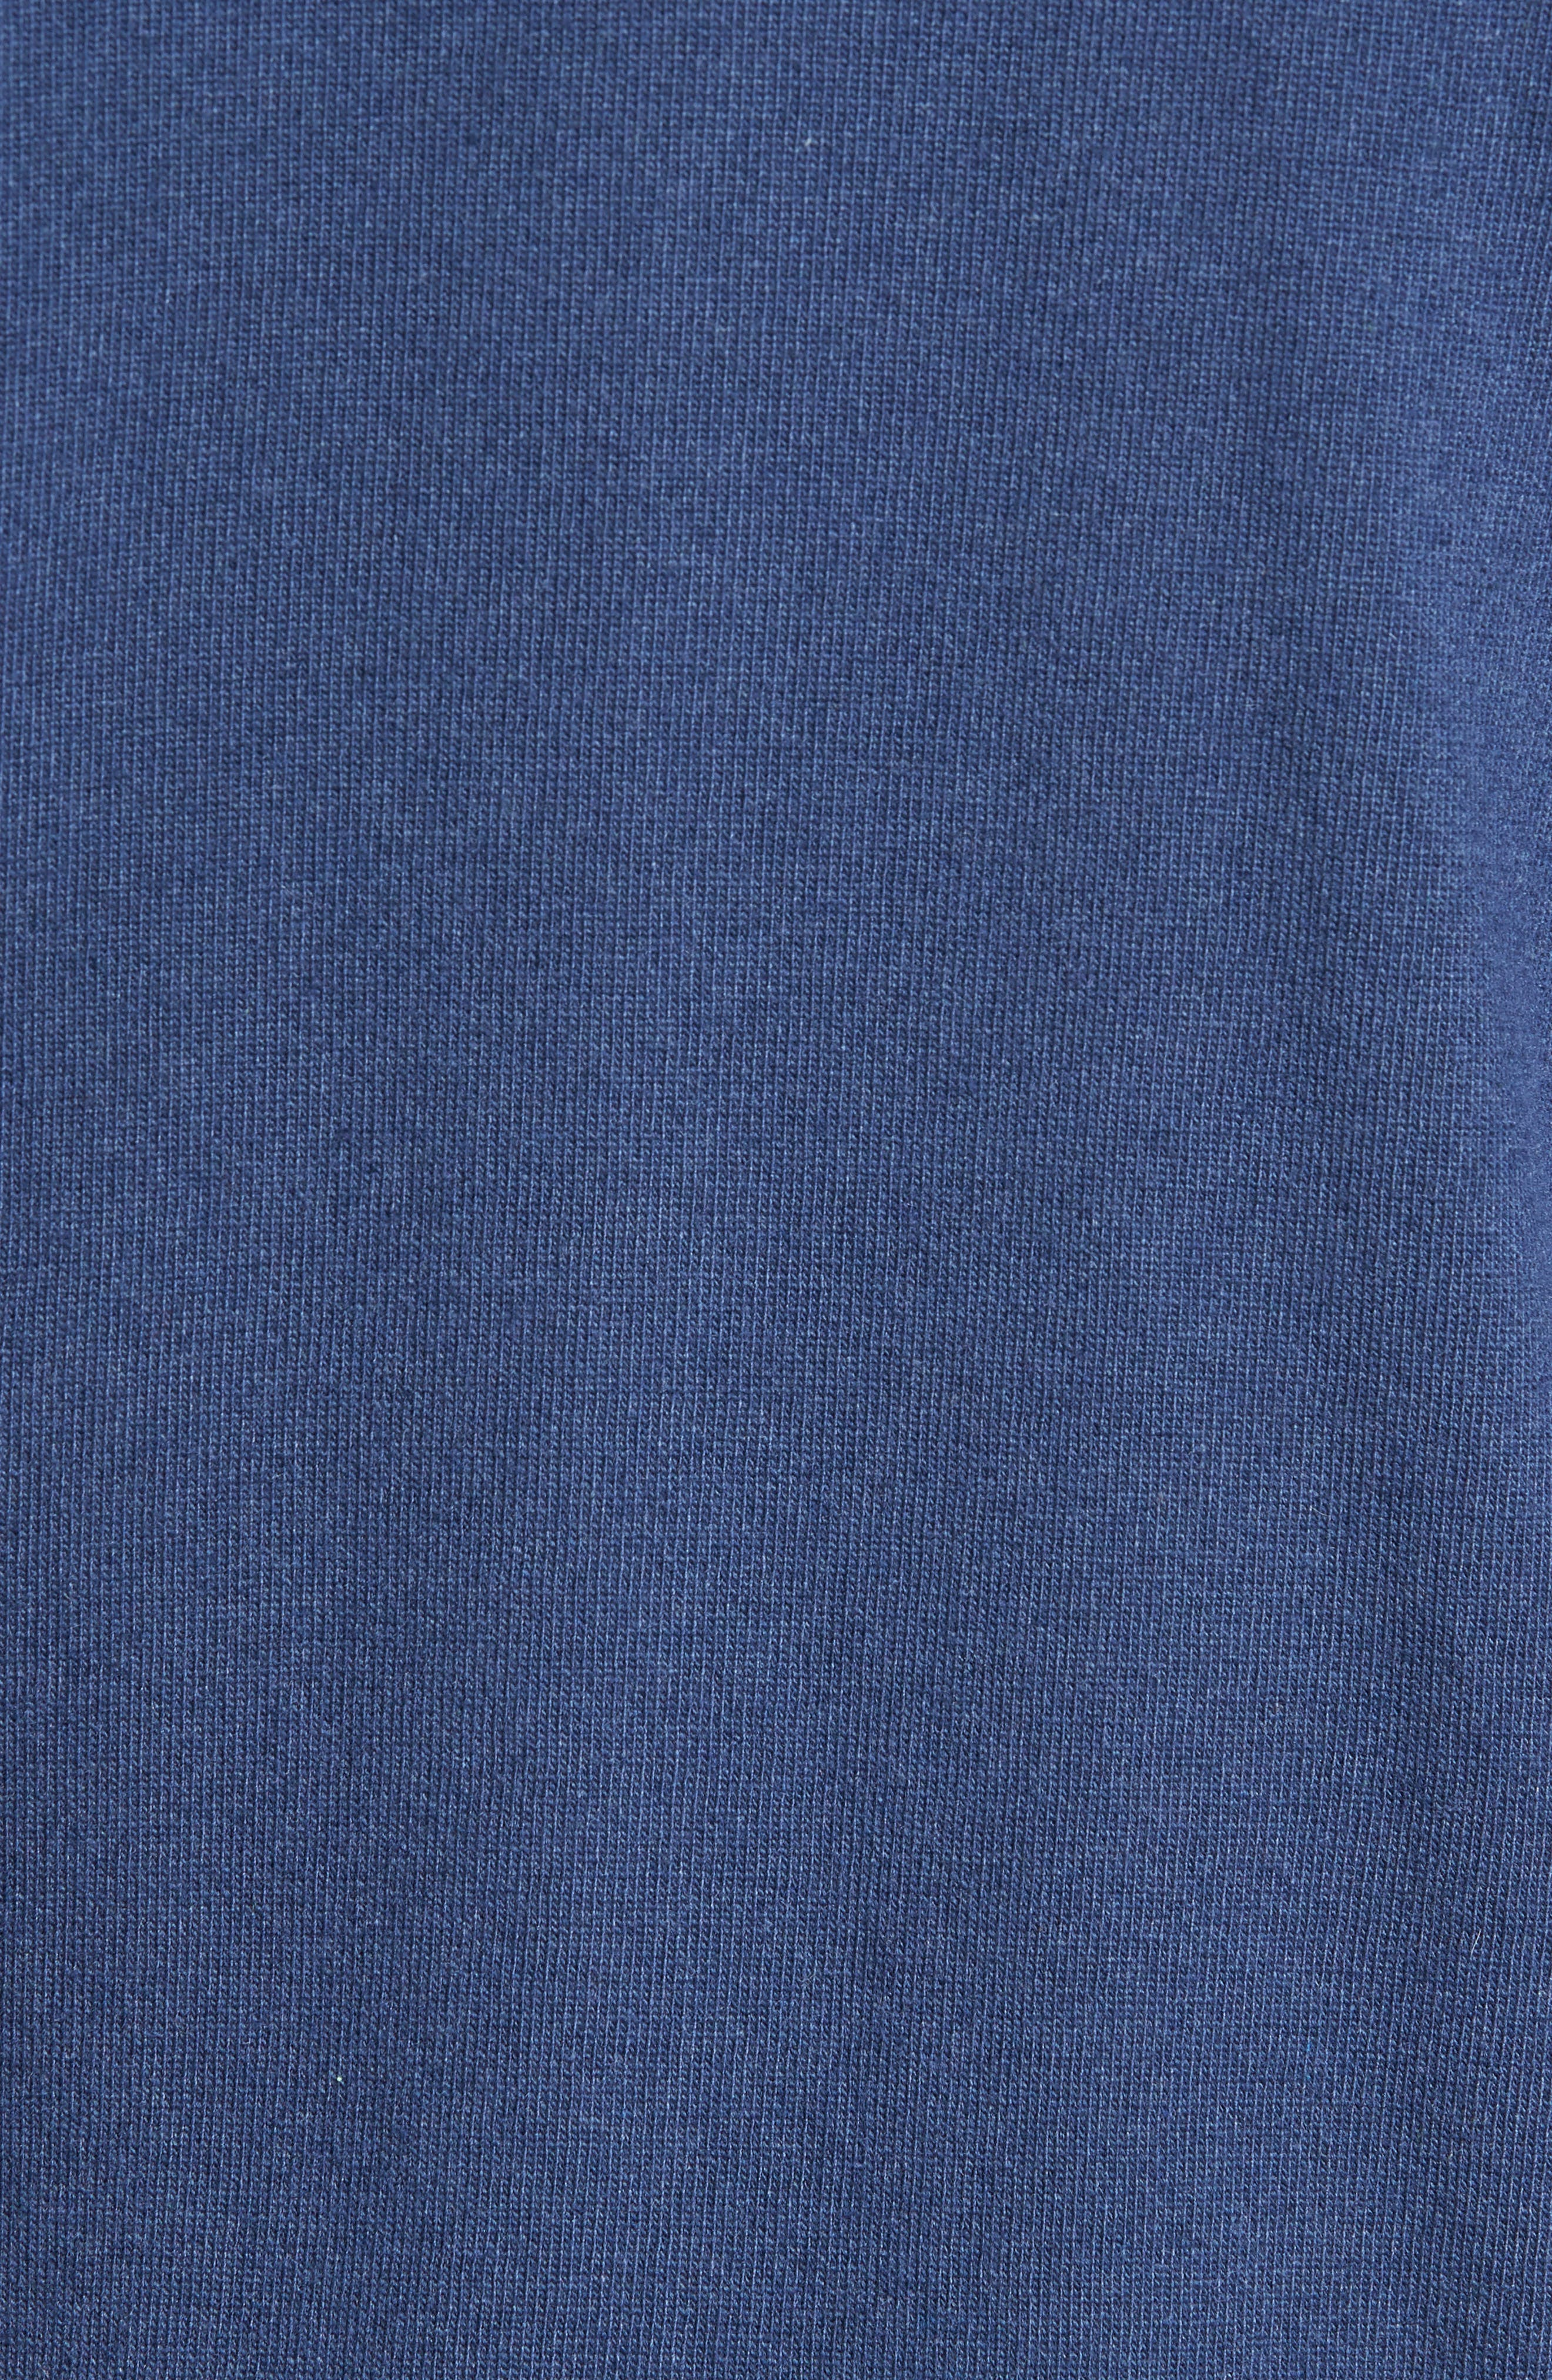 Zip Sweater,                             Alternate thumbnail 5, color,                             Classic Blue